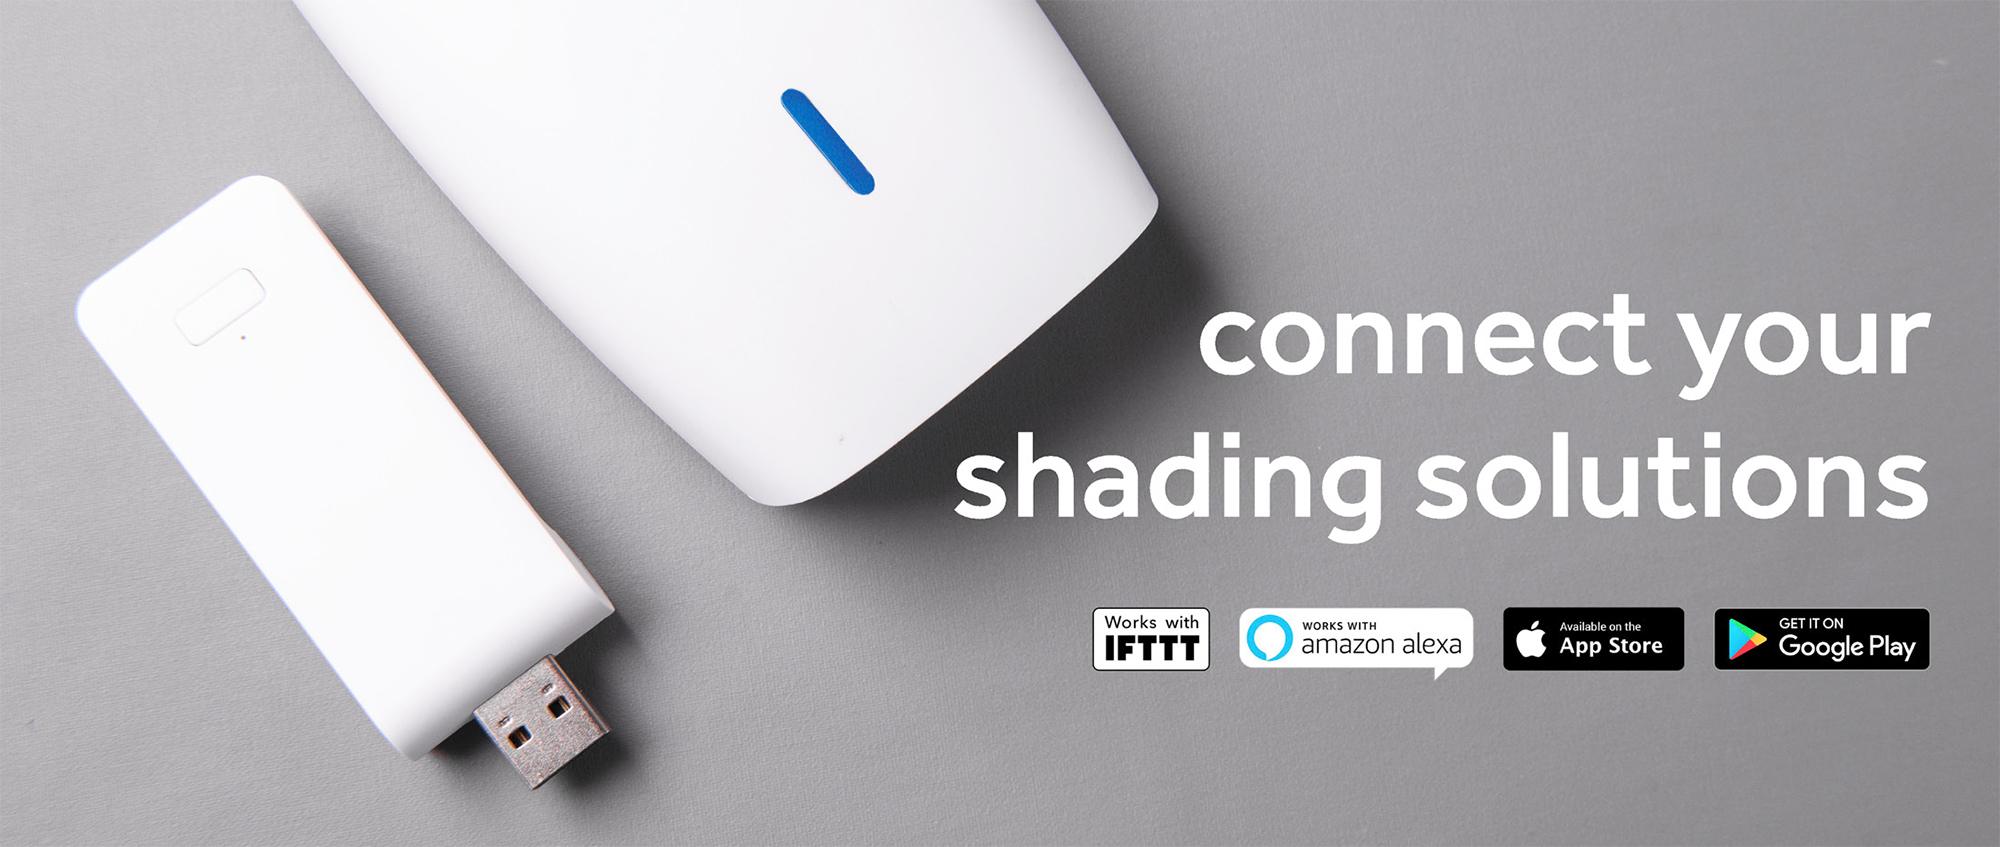 Connect your shading solutions